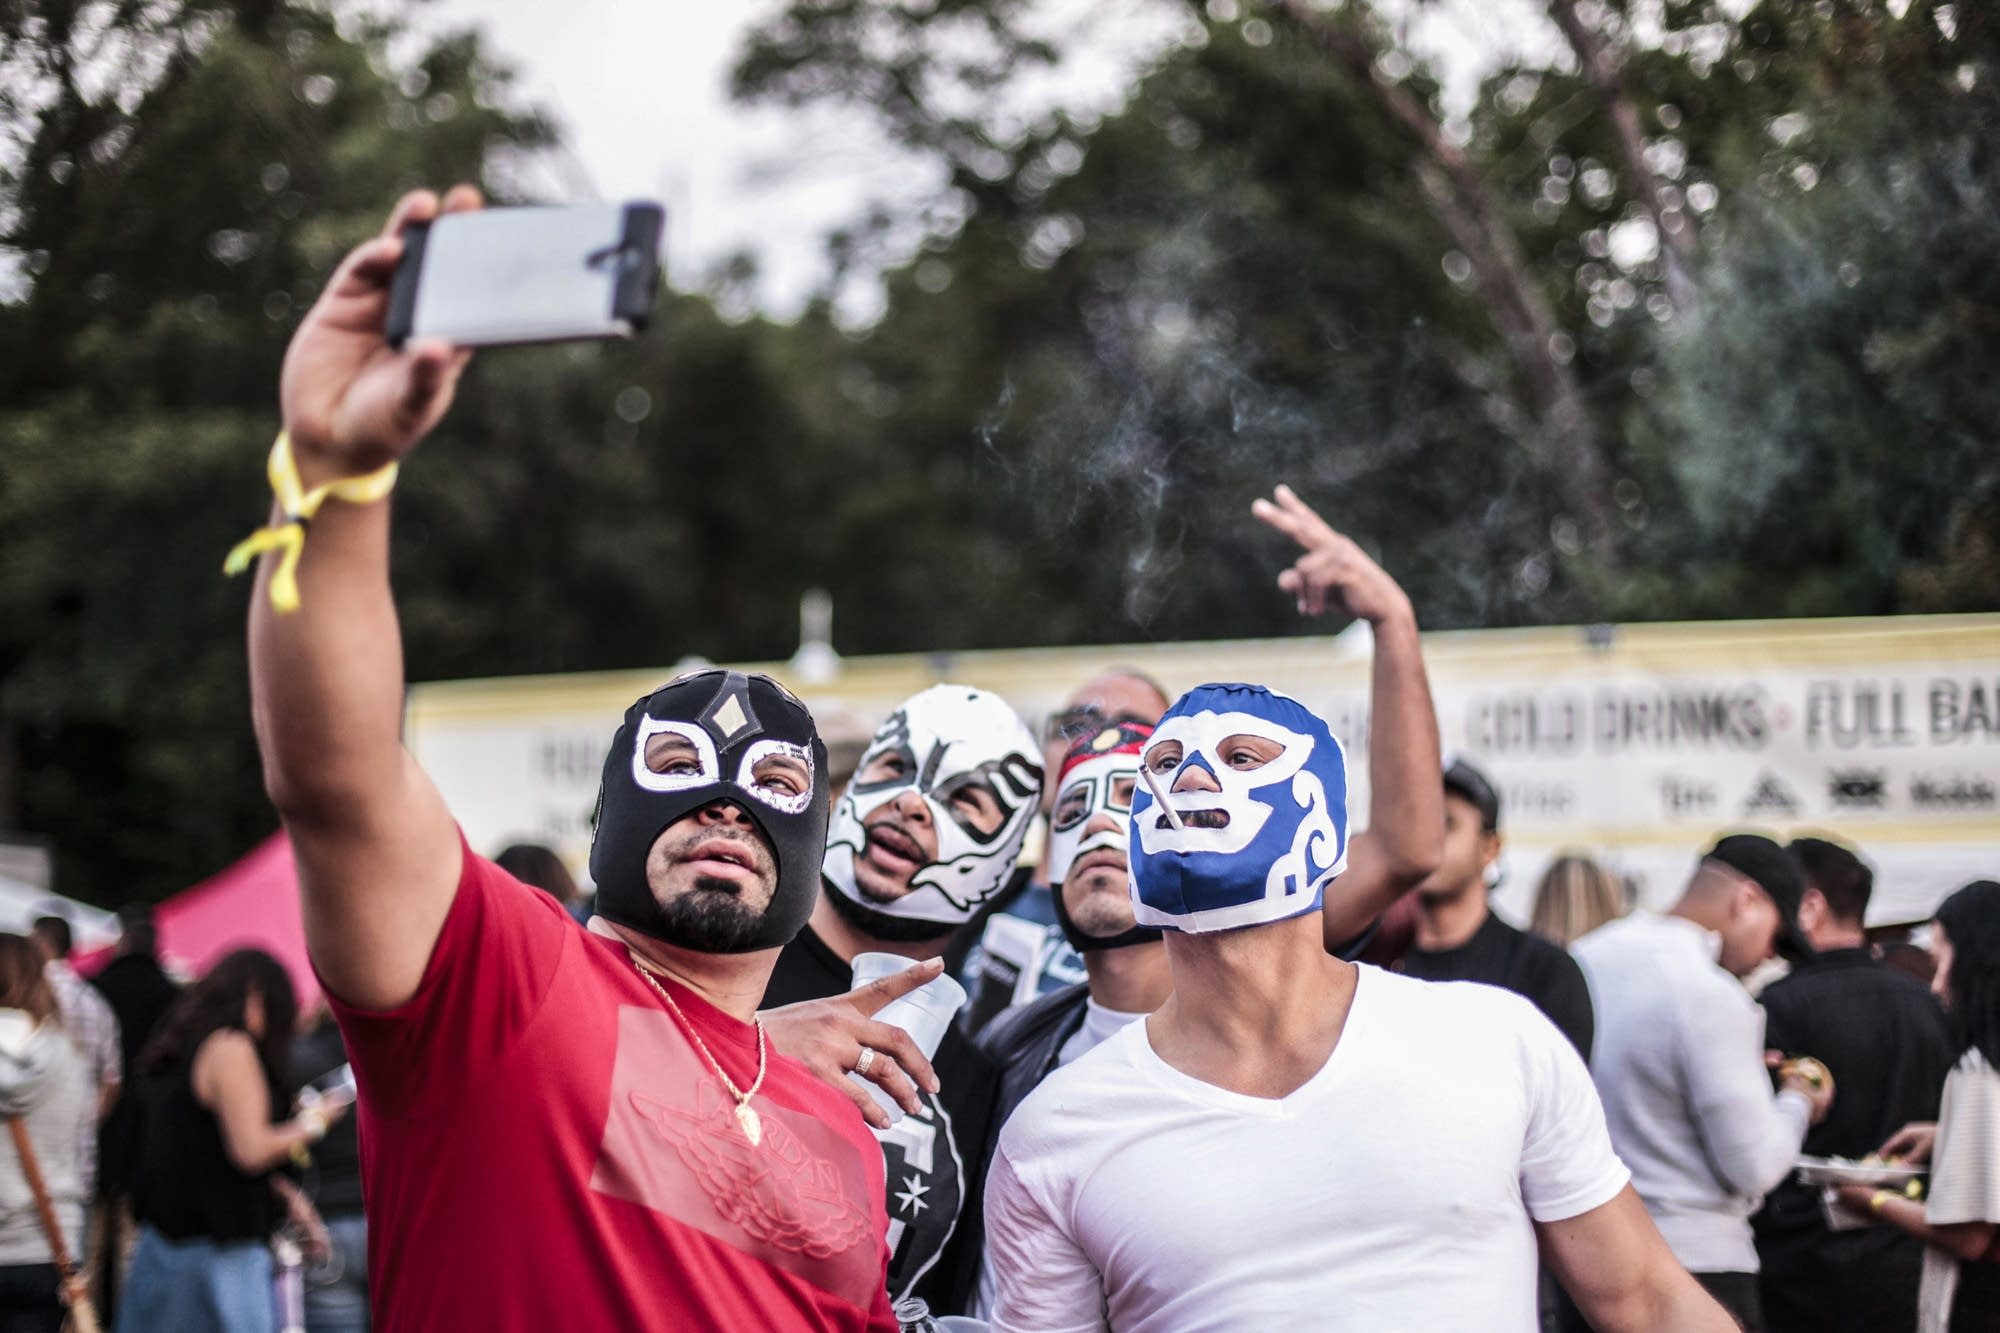 Friends take a selfie in lucha libre masks.